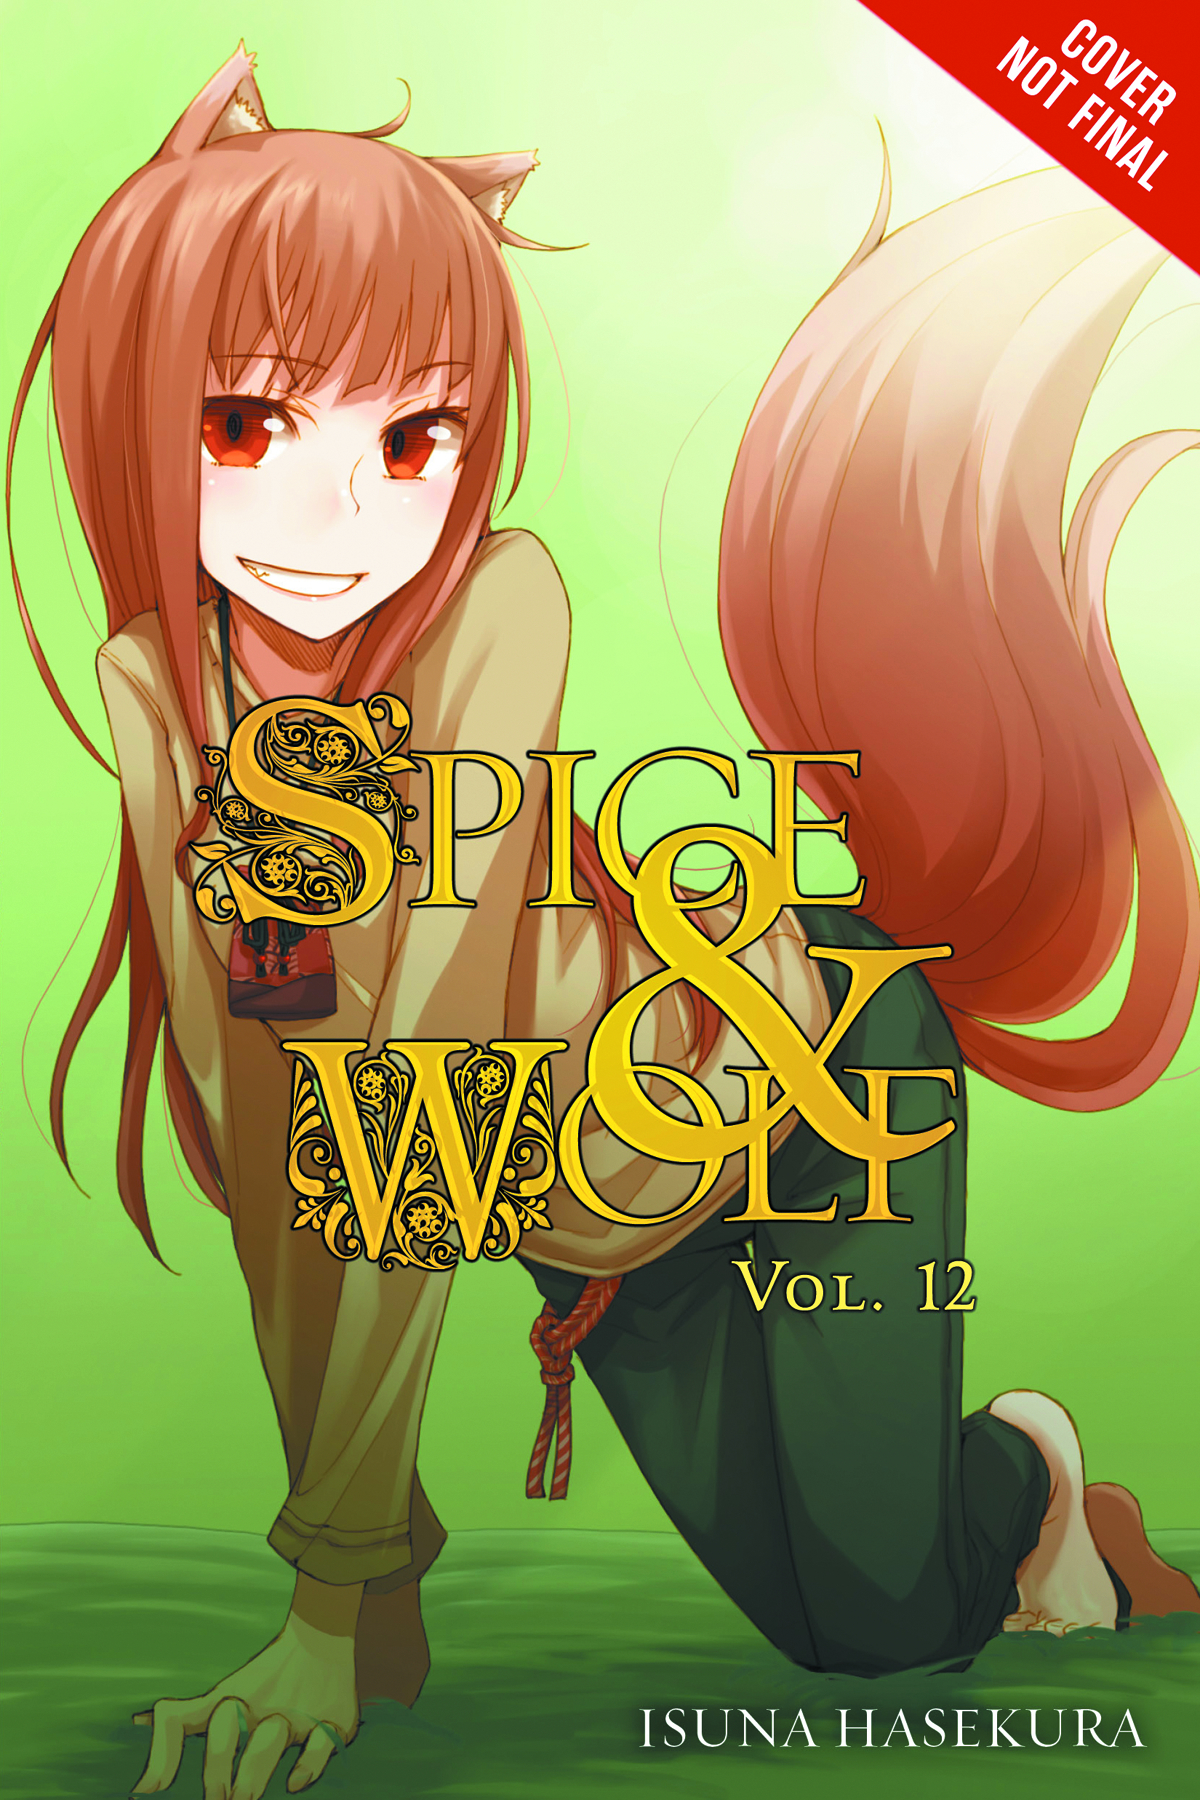 (USE APR179227) SPICE AND WOLF NOVEL VOL 12